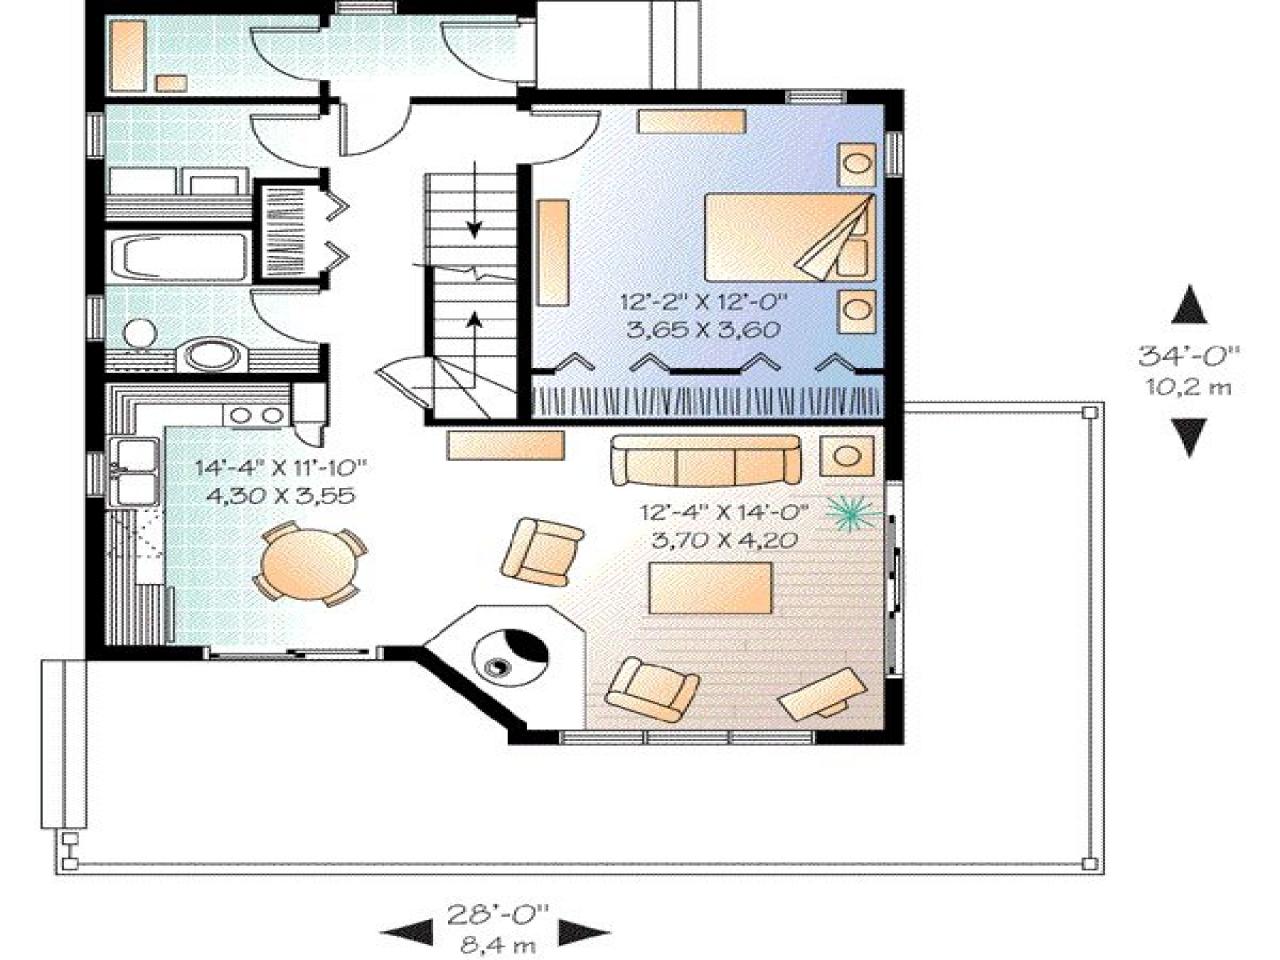 Square Feet Measurement 1300 Square Foot 2 Bedroom House